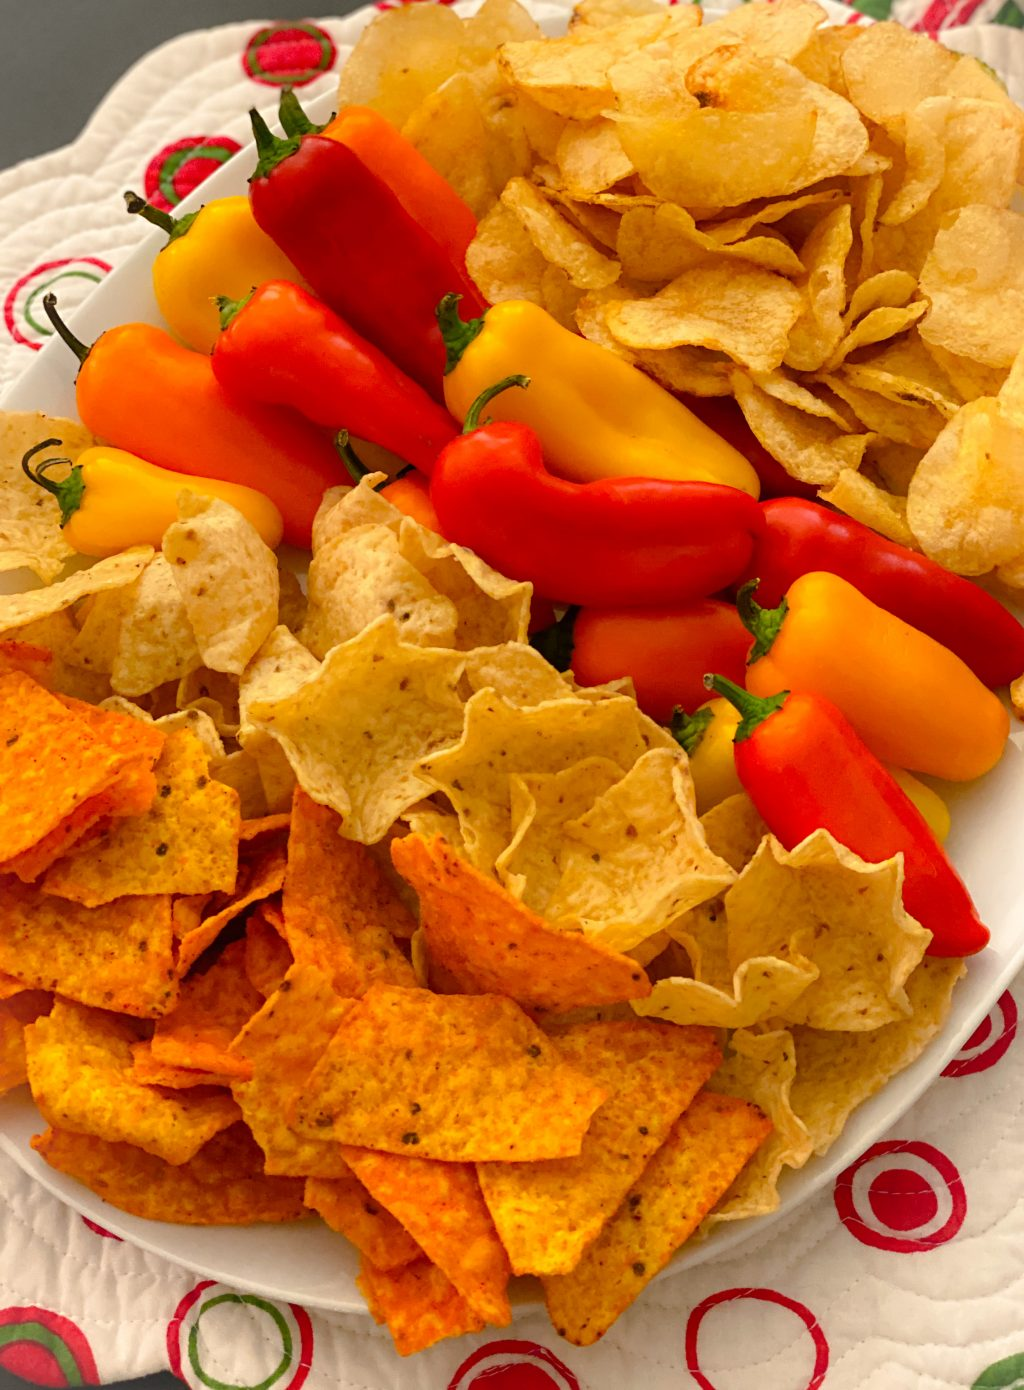 chips and peppers on white try